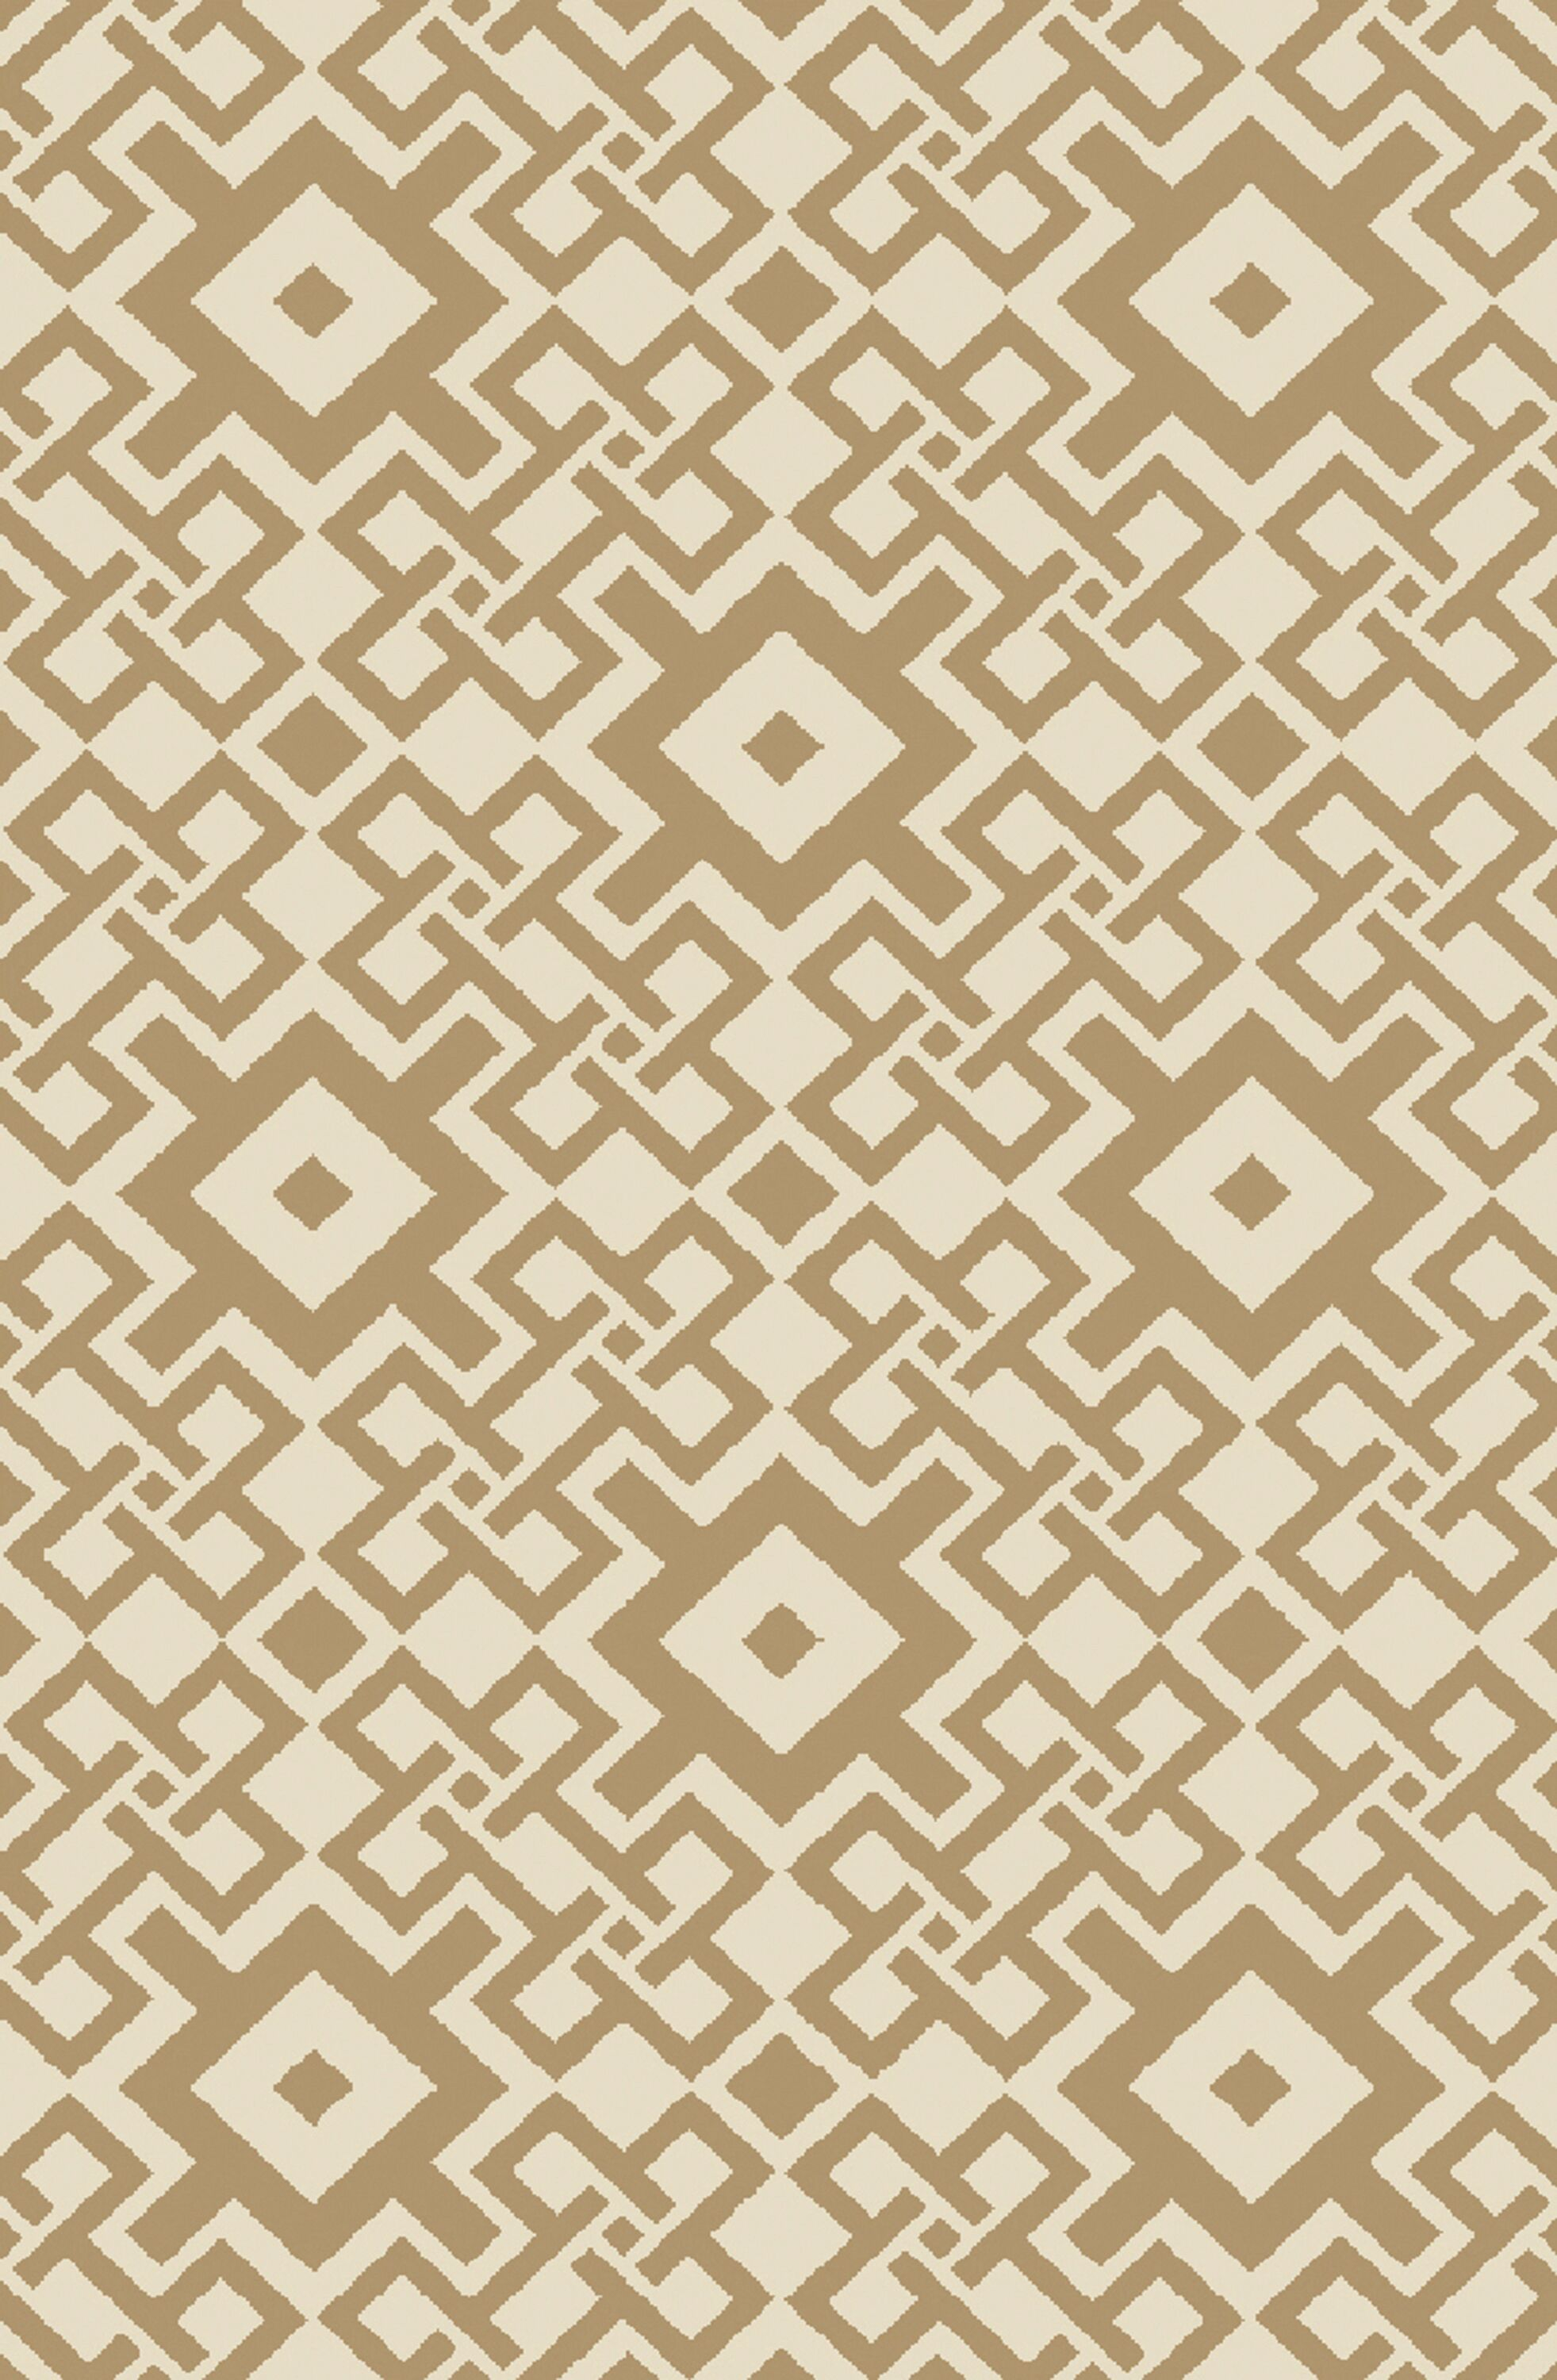 Aura Beige/Mocha Indoor/Outdoor Area Rug Rug Size: Rectangle 5' x 7'6